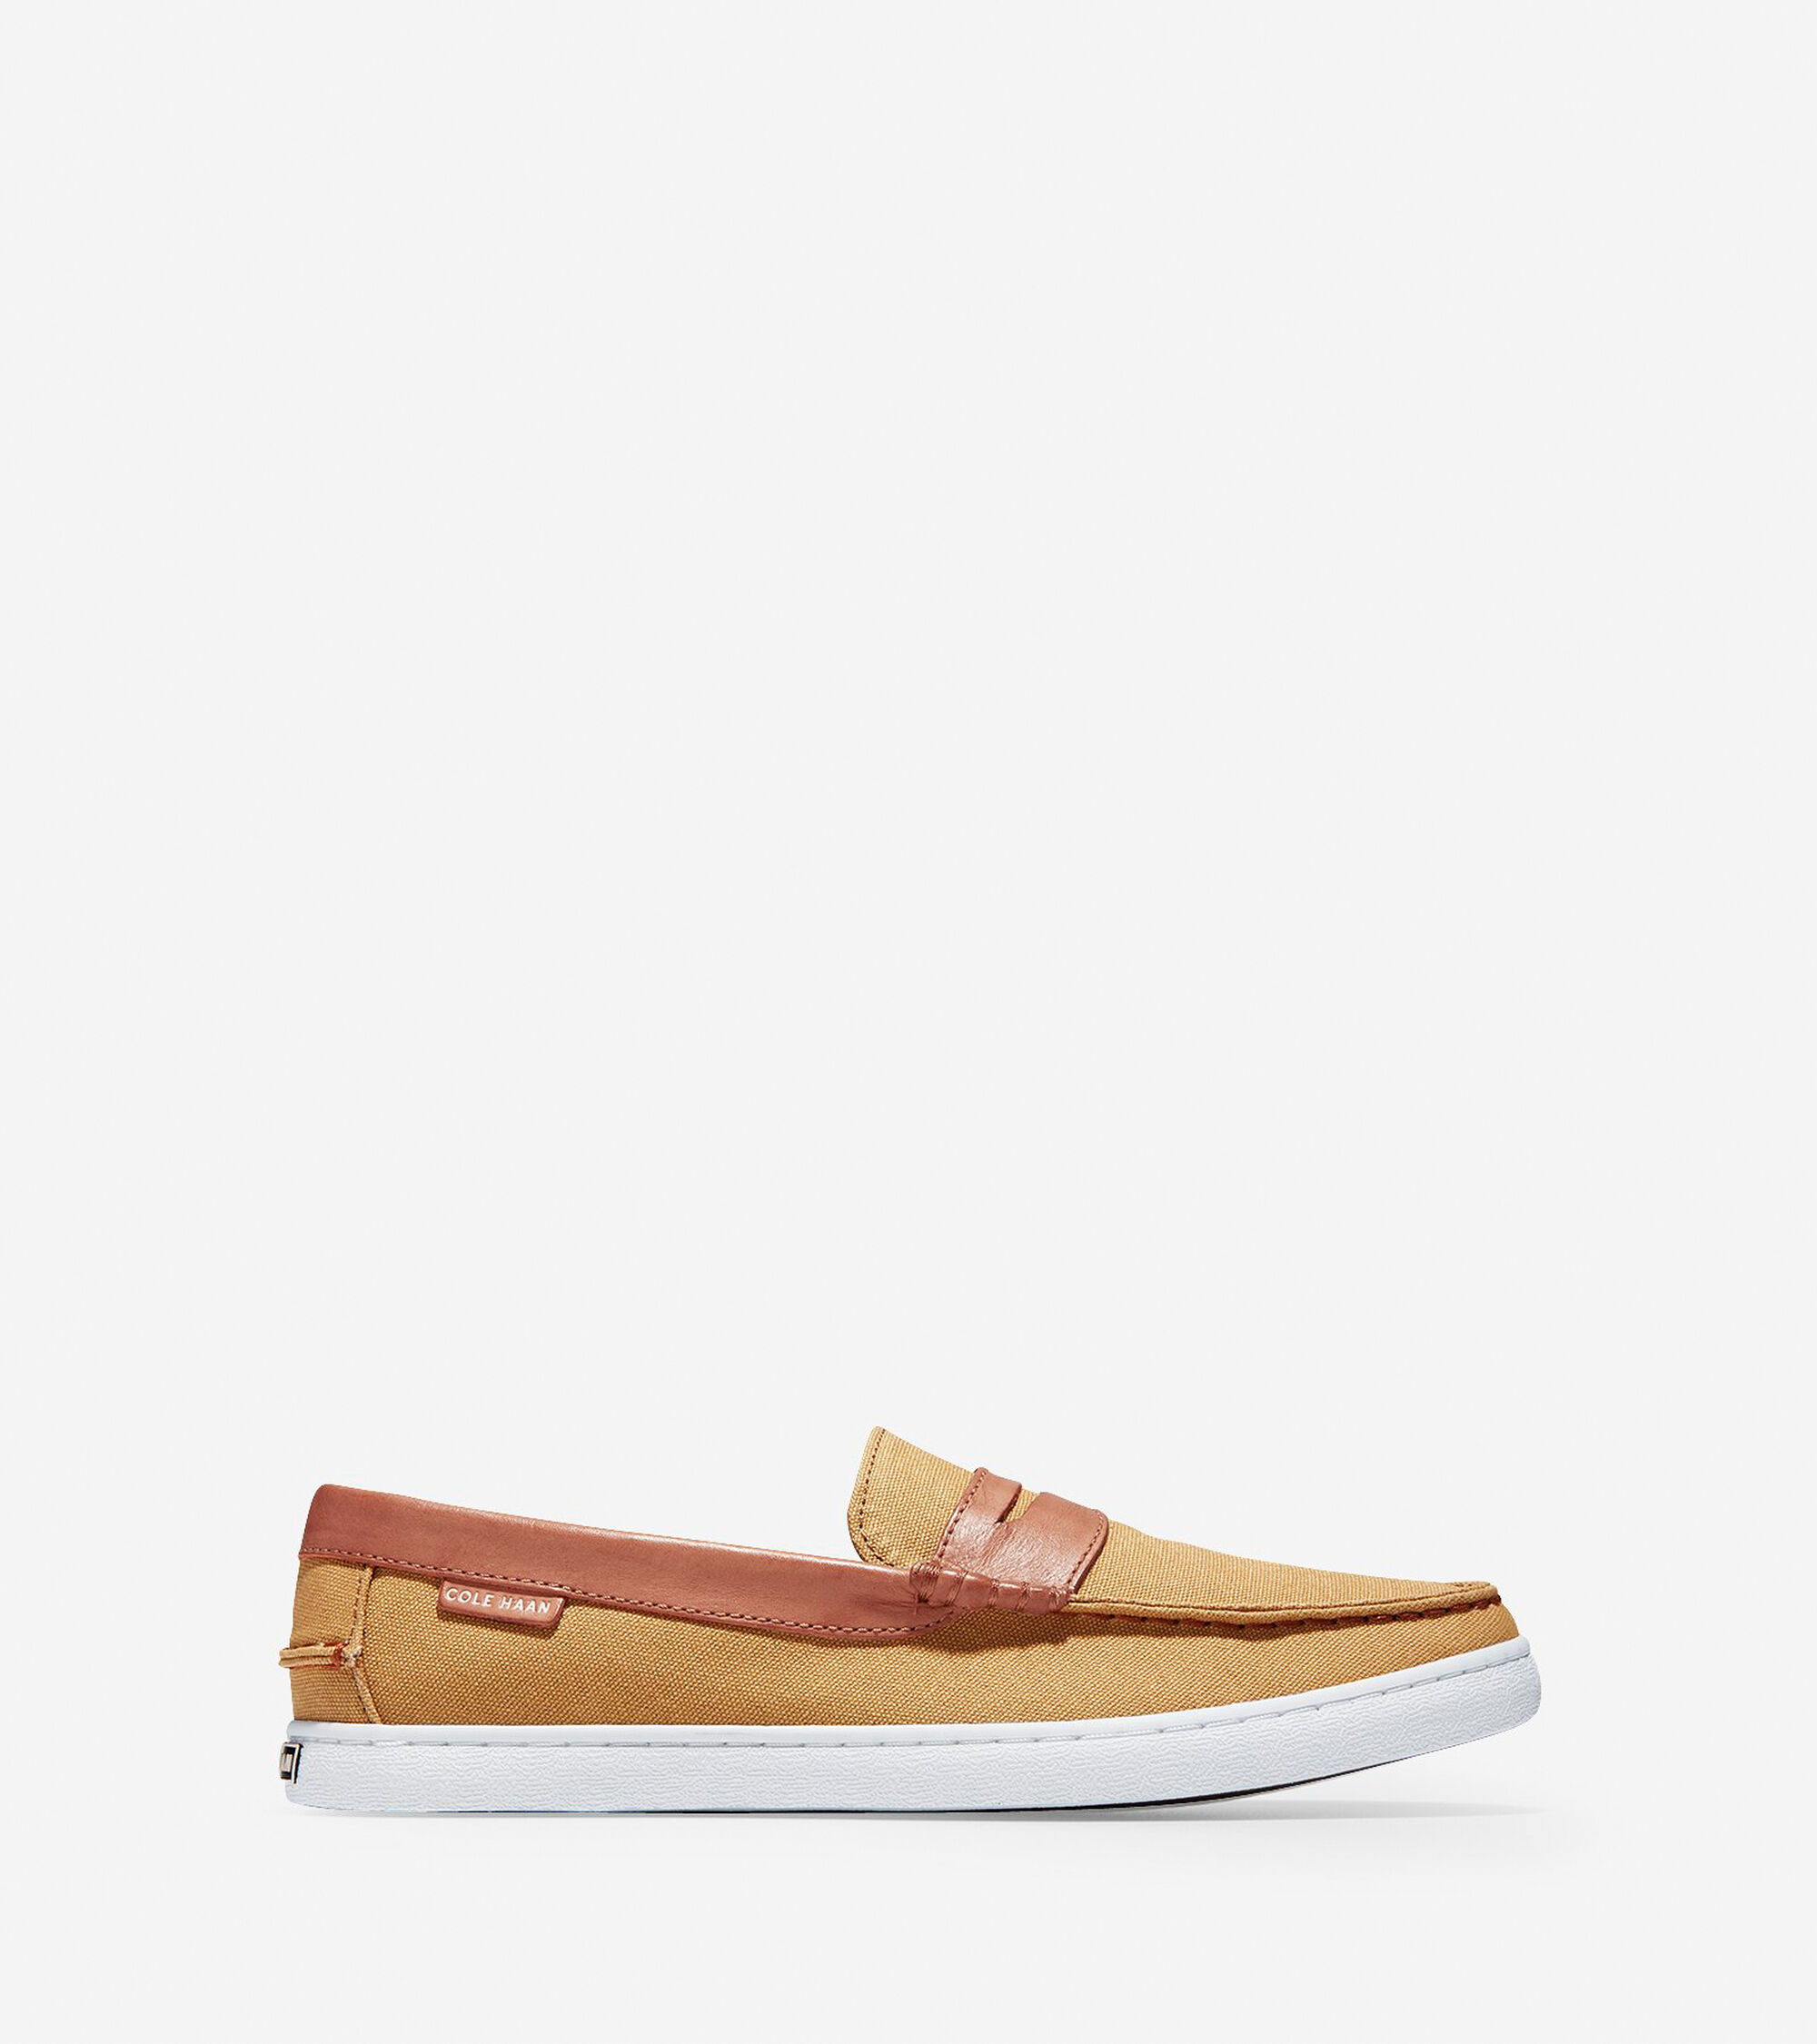 9e8d283e545 Men s Nantucket Loafers in Iced Coffee Canvas